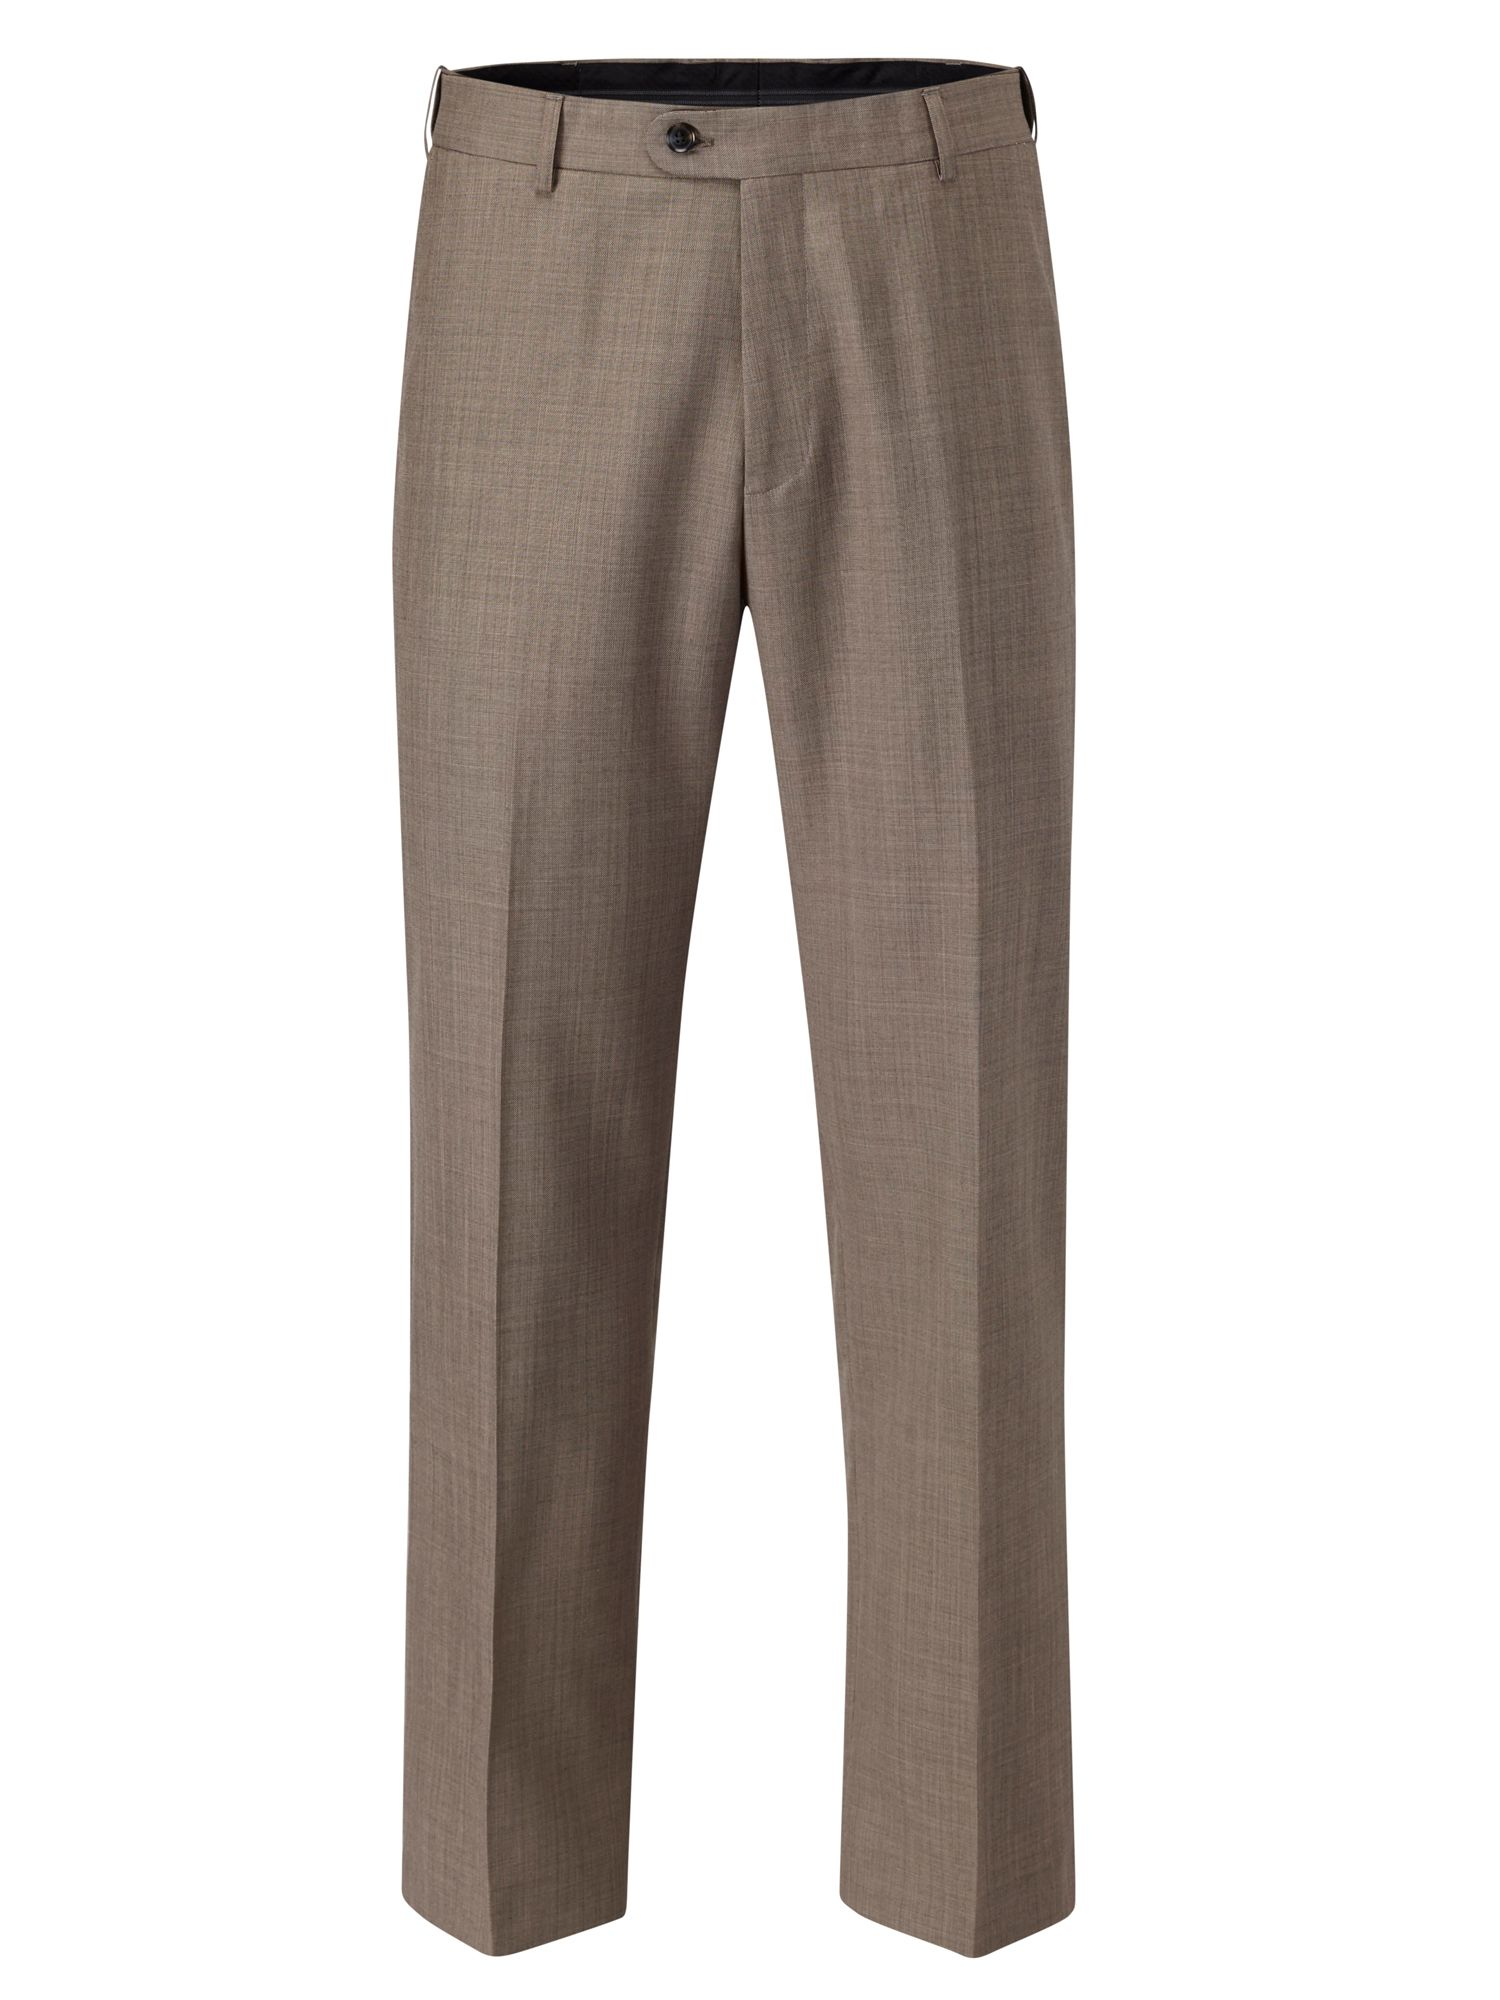 Mens Skopes Palmer Plain Classic Fit Suit Trousers $65.00 AT vintagedancer.com